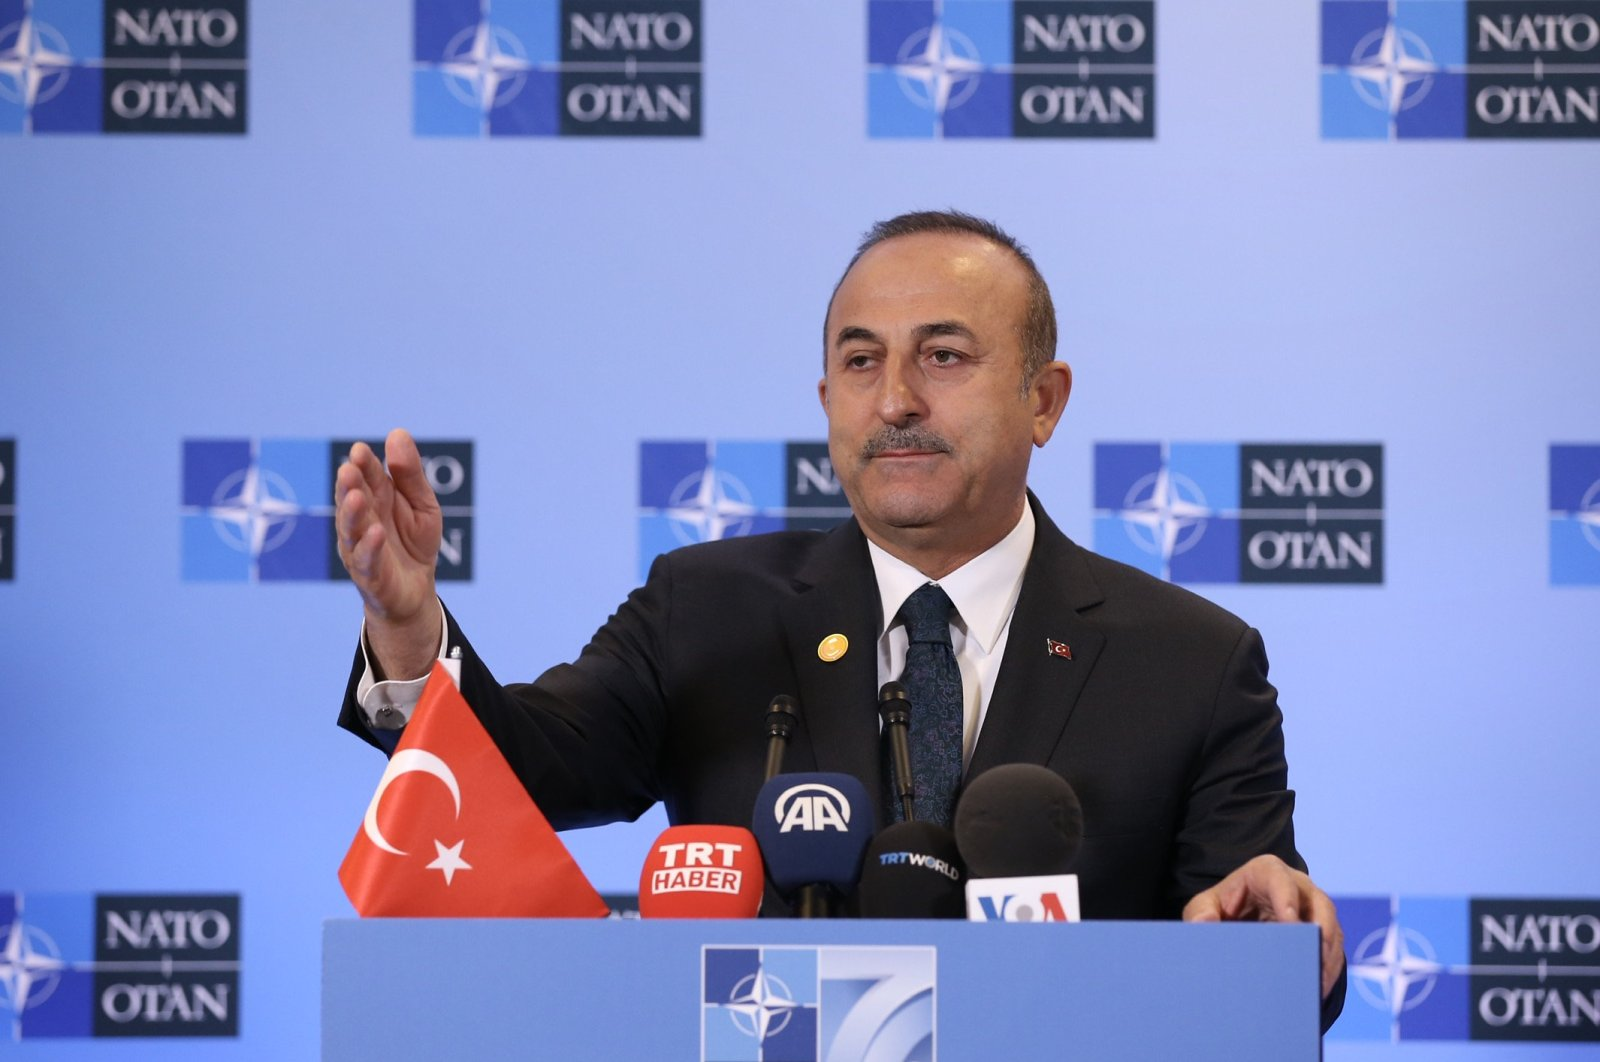 Foreign Minister Mevlüt Çavuşoğlu speaks to reporters following a NATO Foreign Ministers Meeting in Washington, D.C., U.S., April 8, 2019. (AA File Photo)